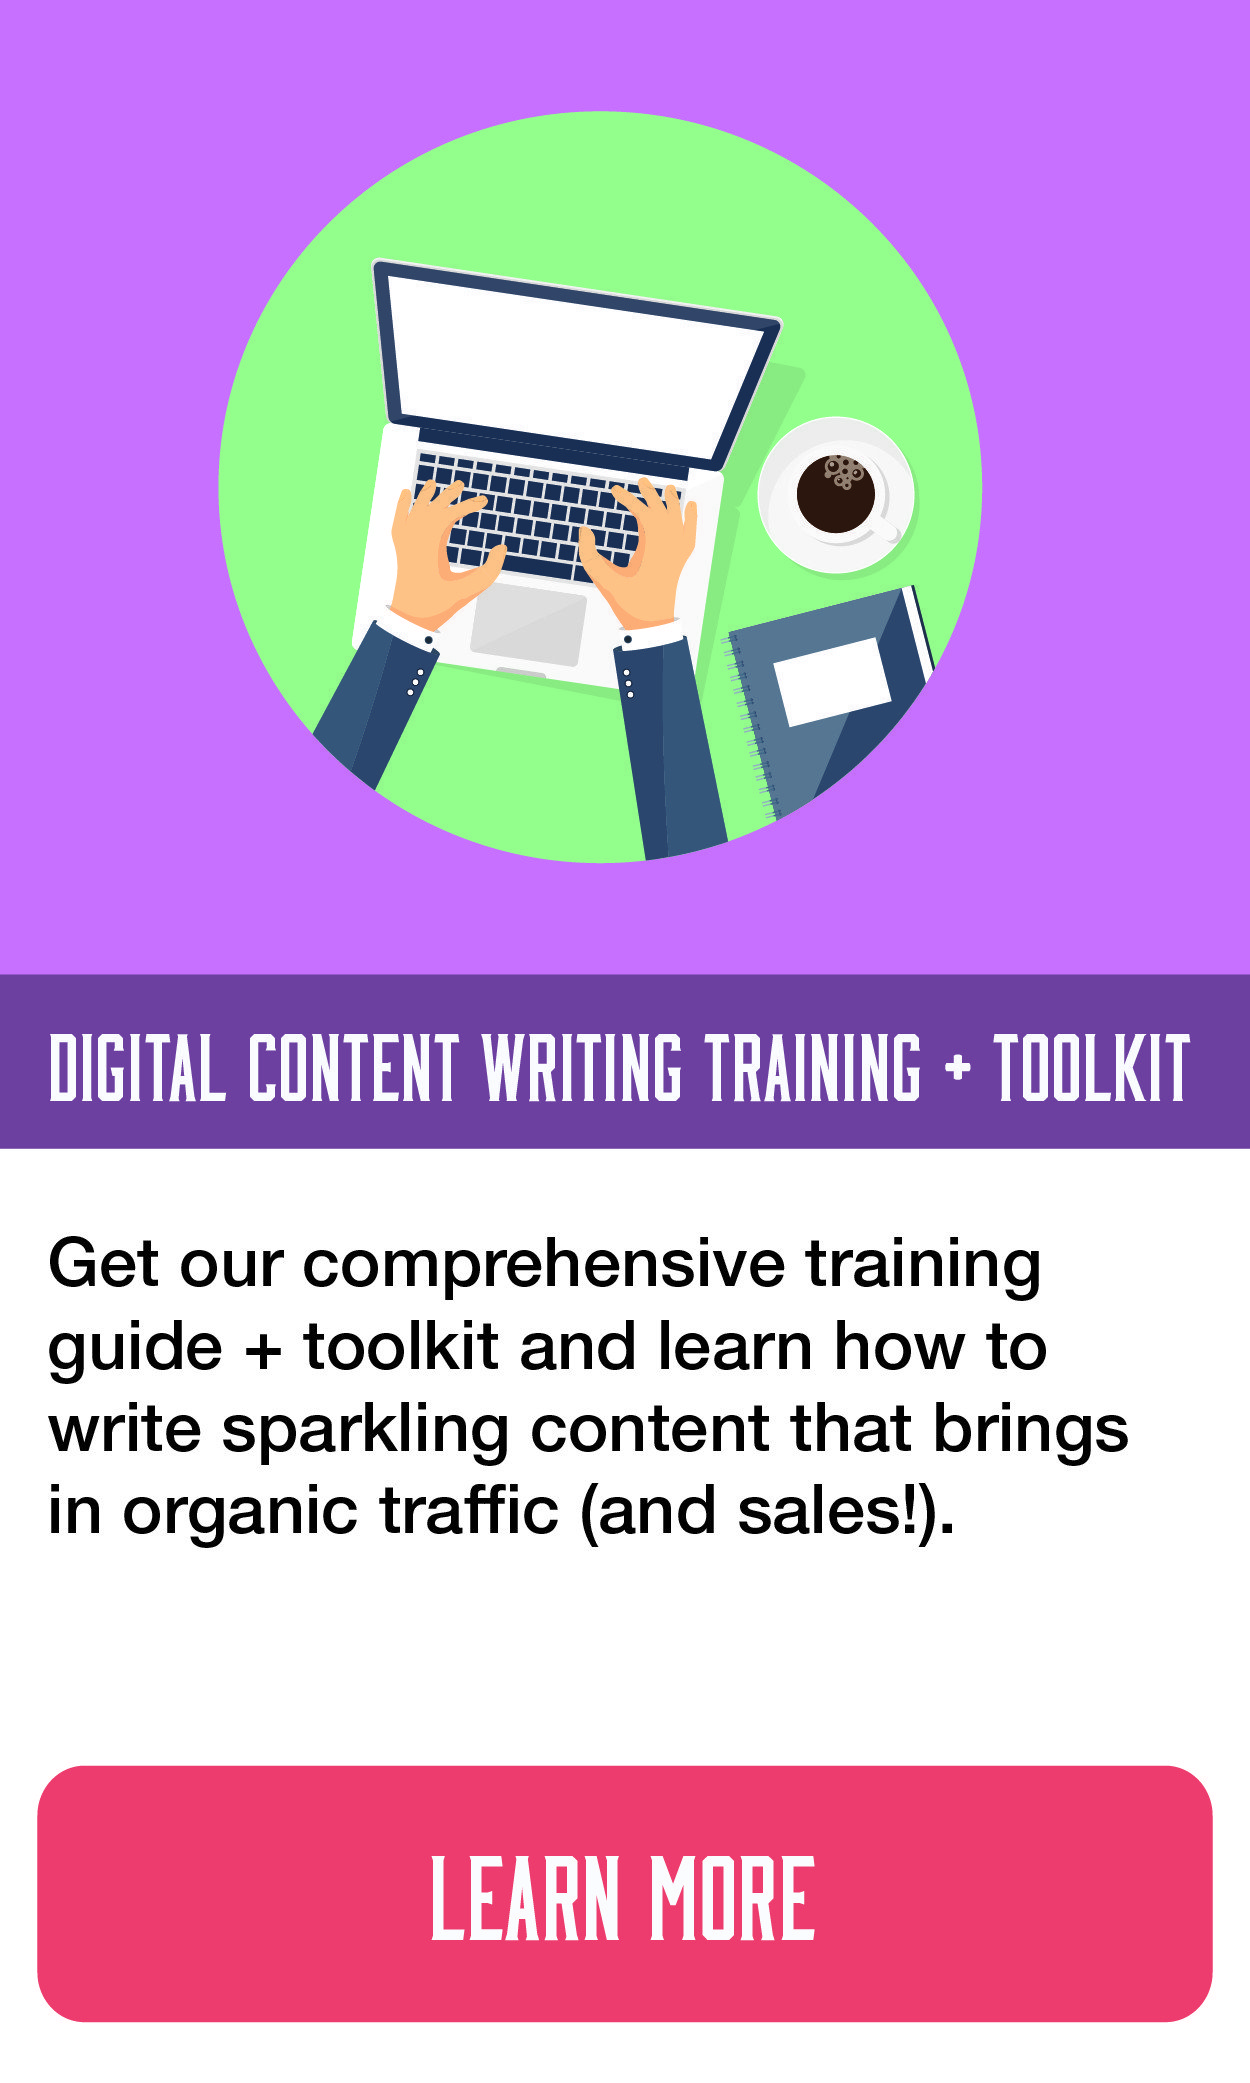 digital content writing training and Toolkit